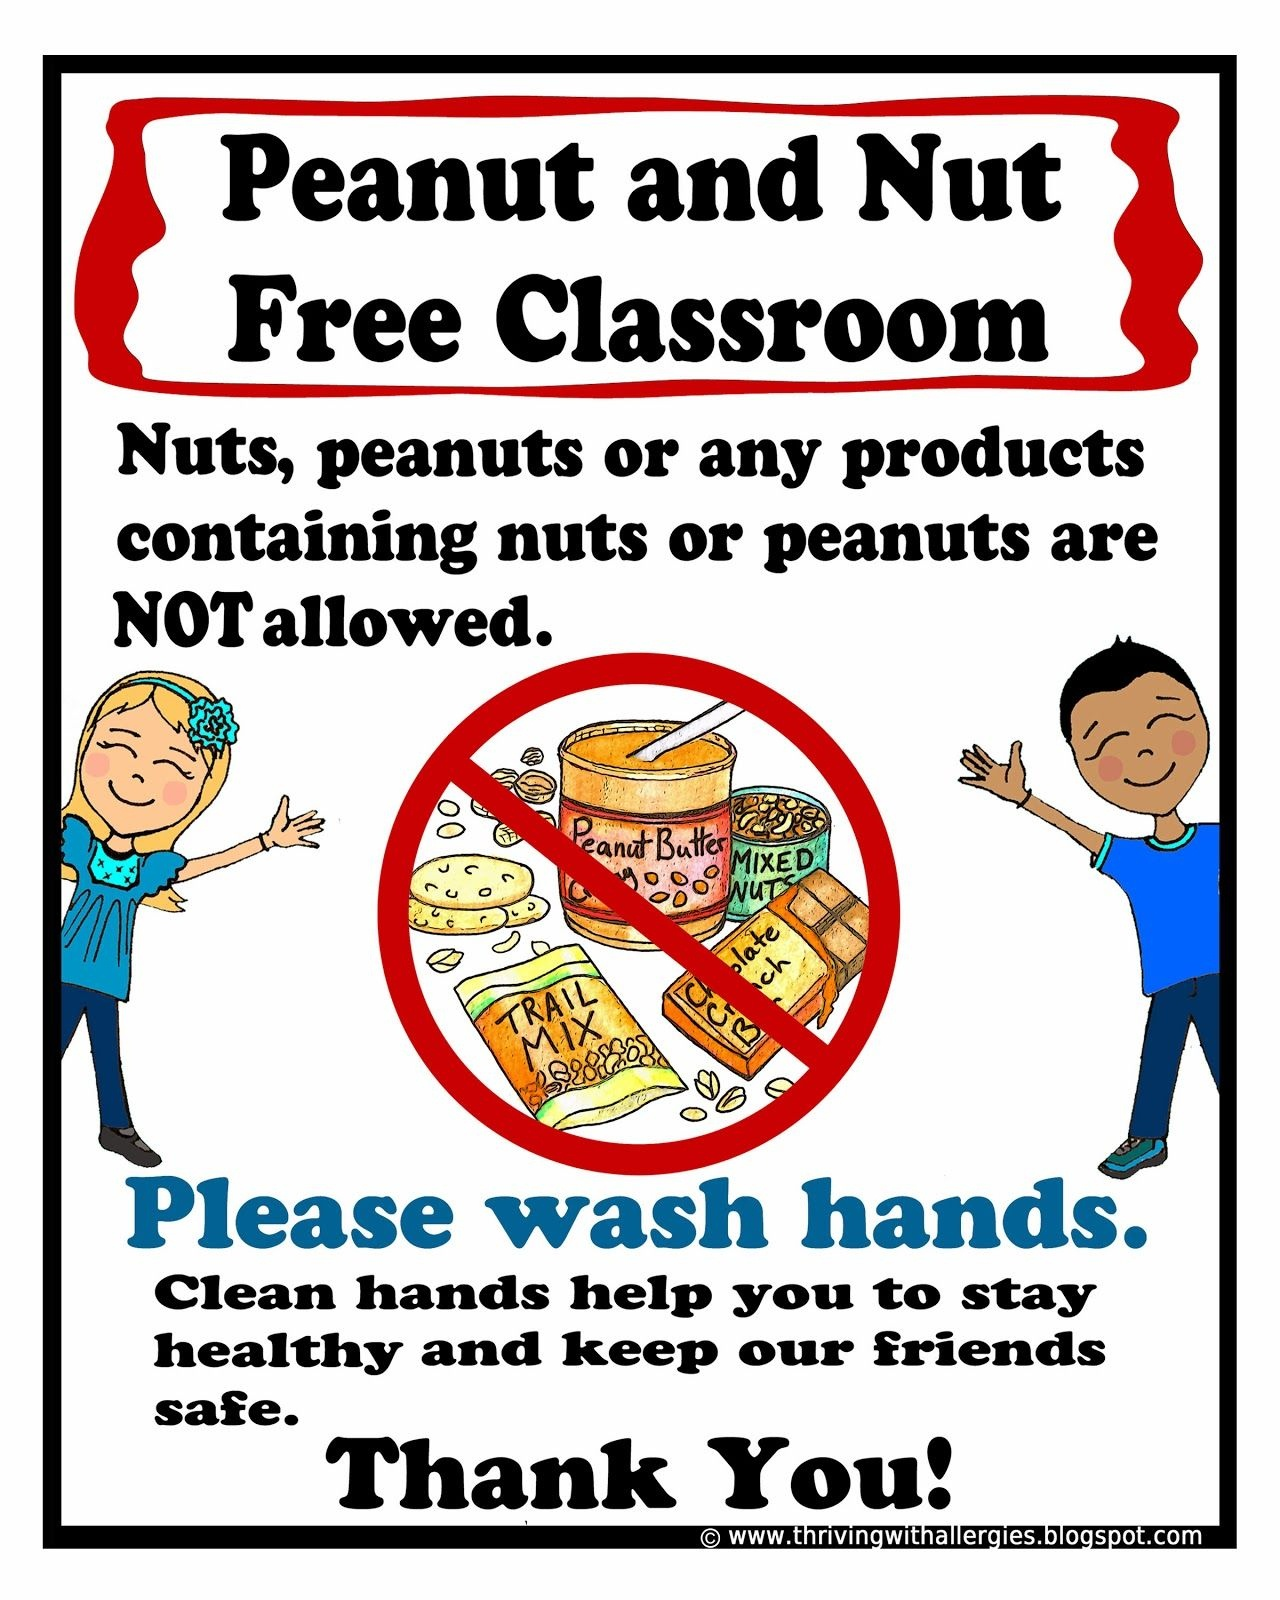 Peanut And Nut Free Classroom Poster. Free Printable Poster | Food - Printable Peanut Free Classroom Signs